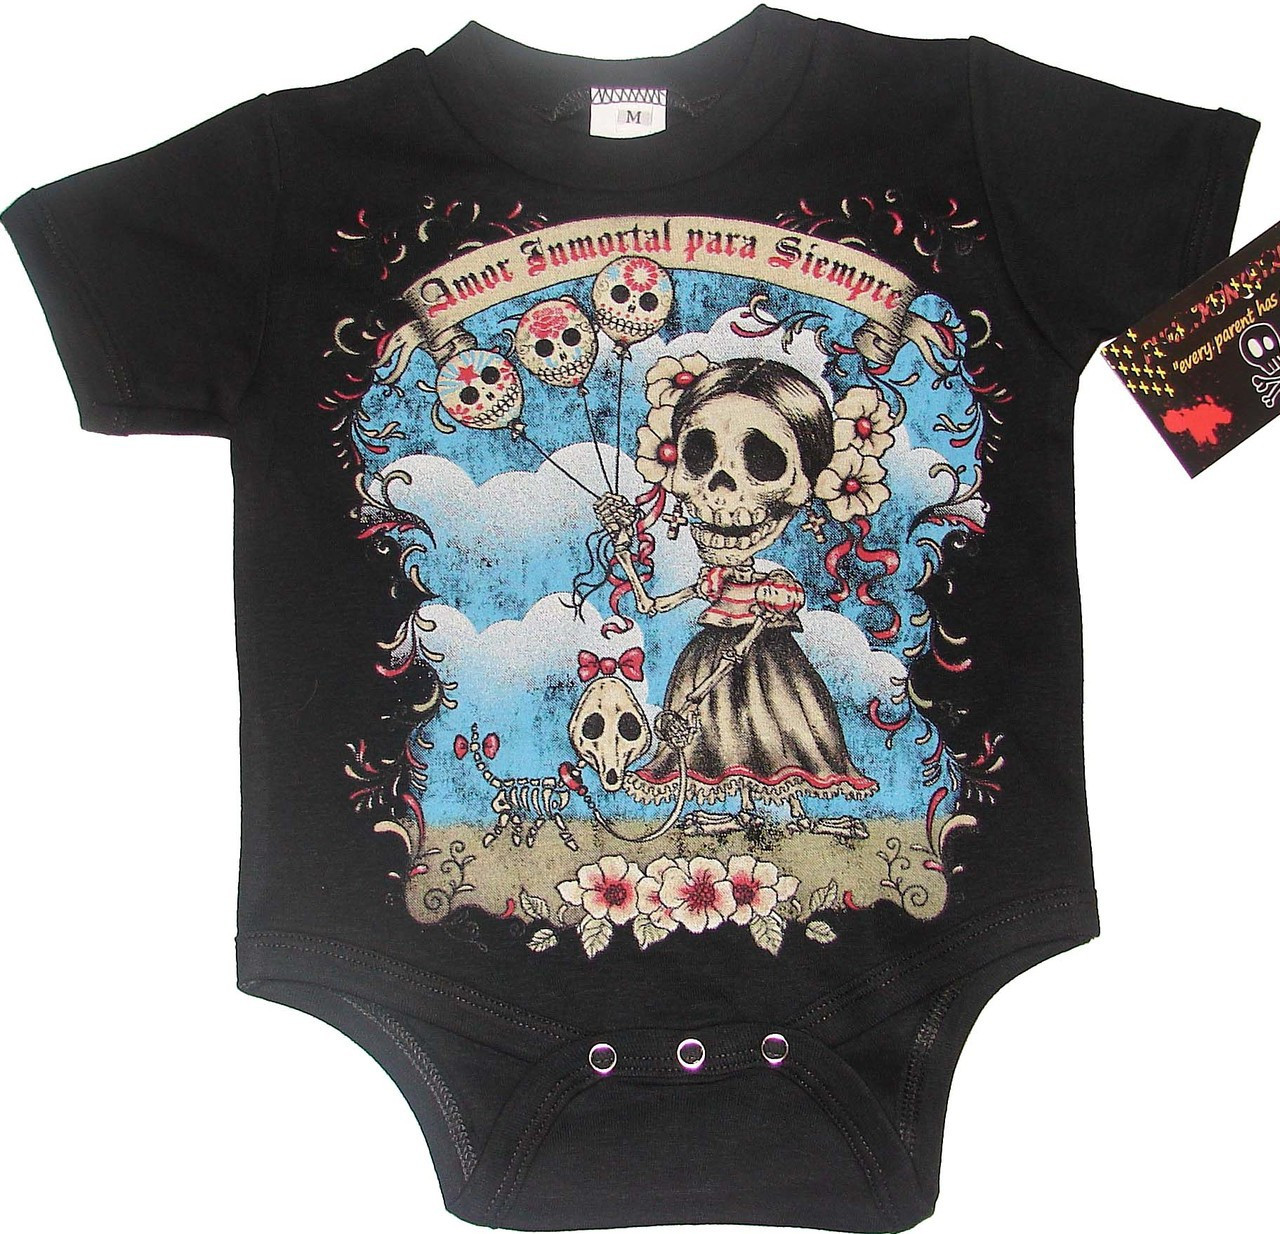 Punk day of the dead amor inmortal para siempre baby for Baby onesie t shirt